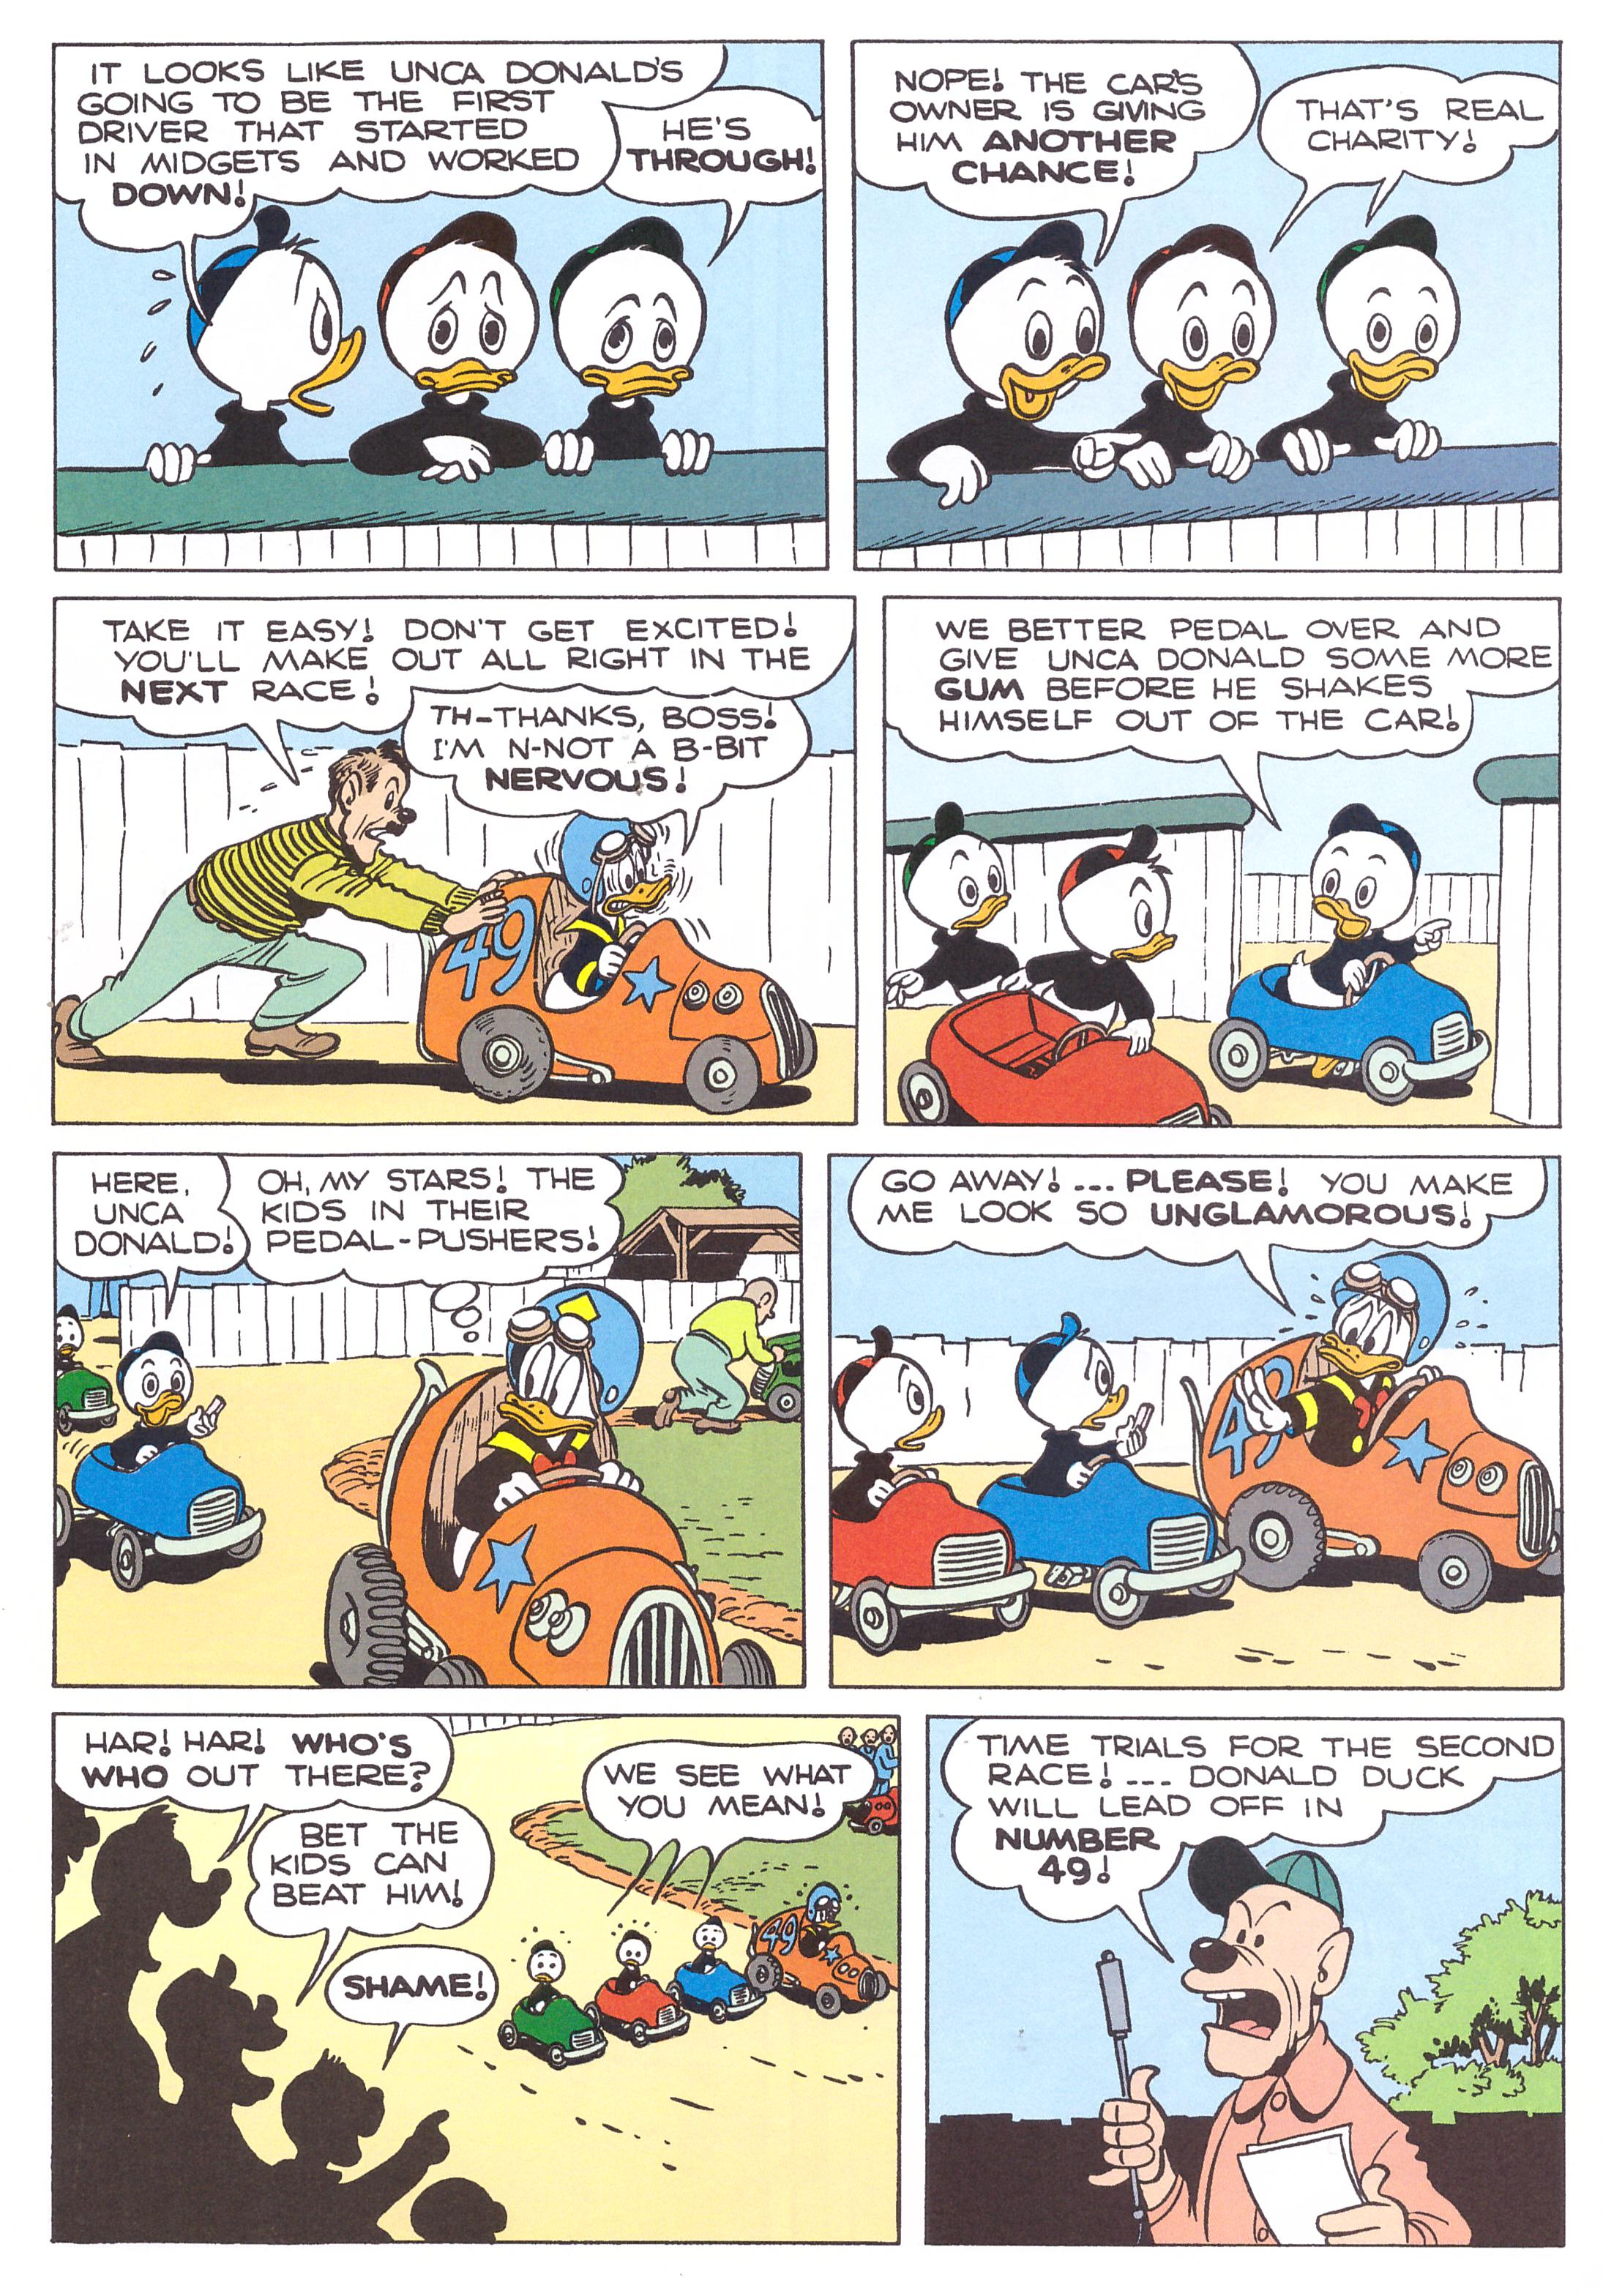 Walt Disney's Comcs and Stories by Carl Barks 26 review